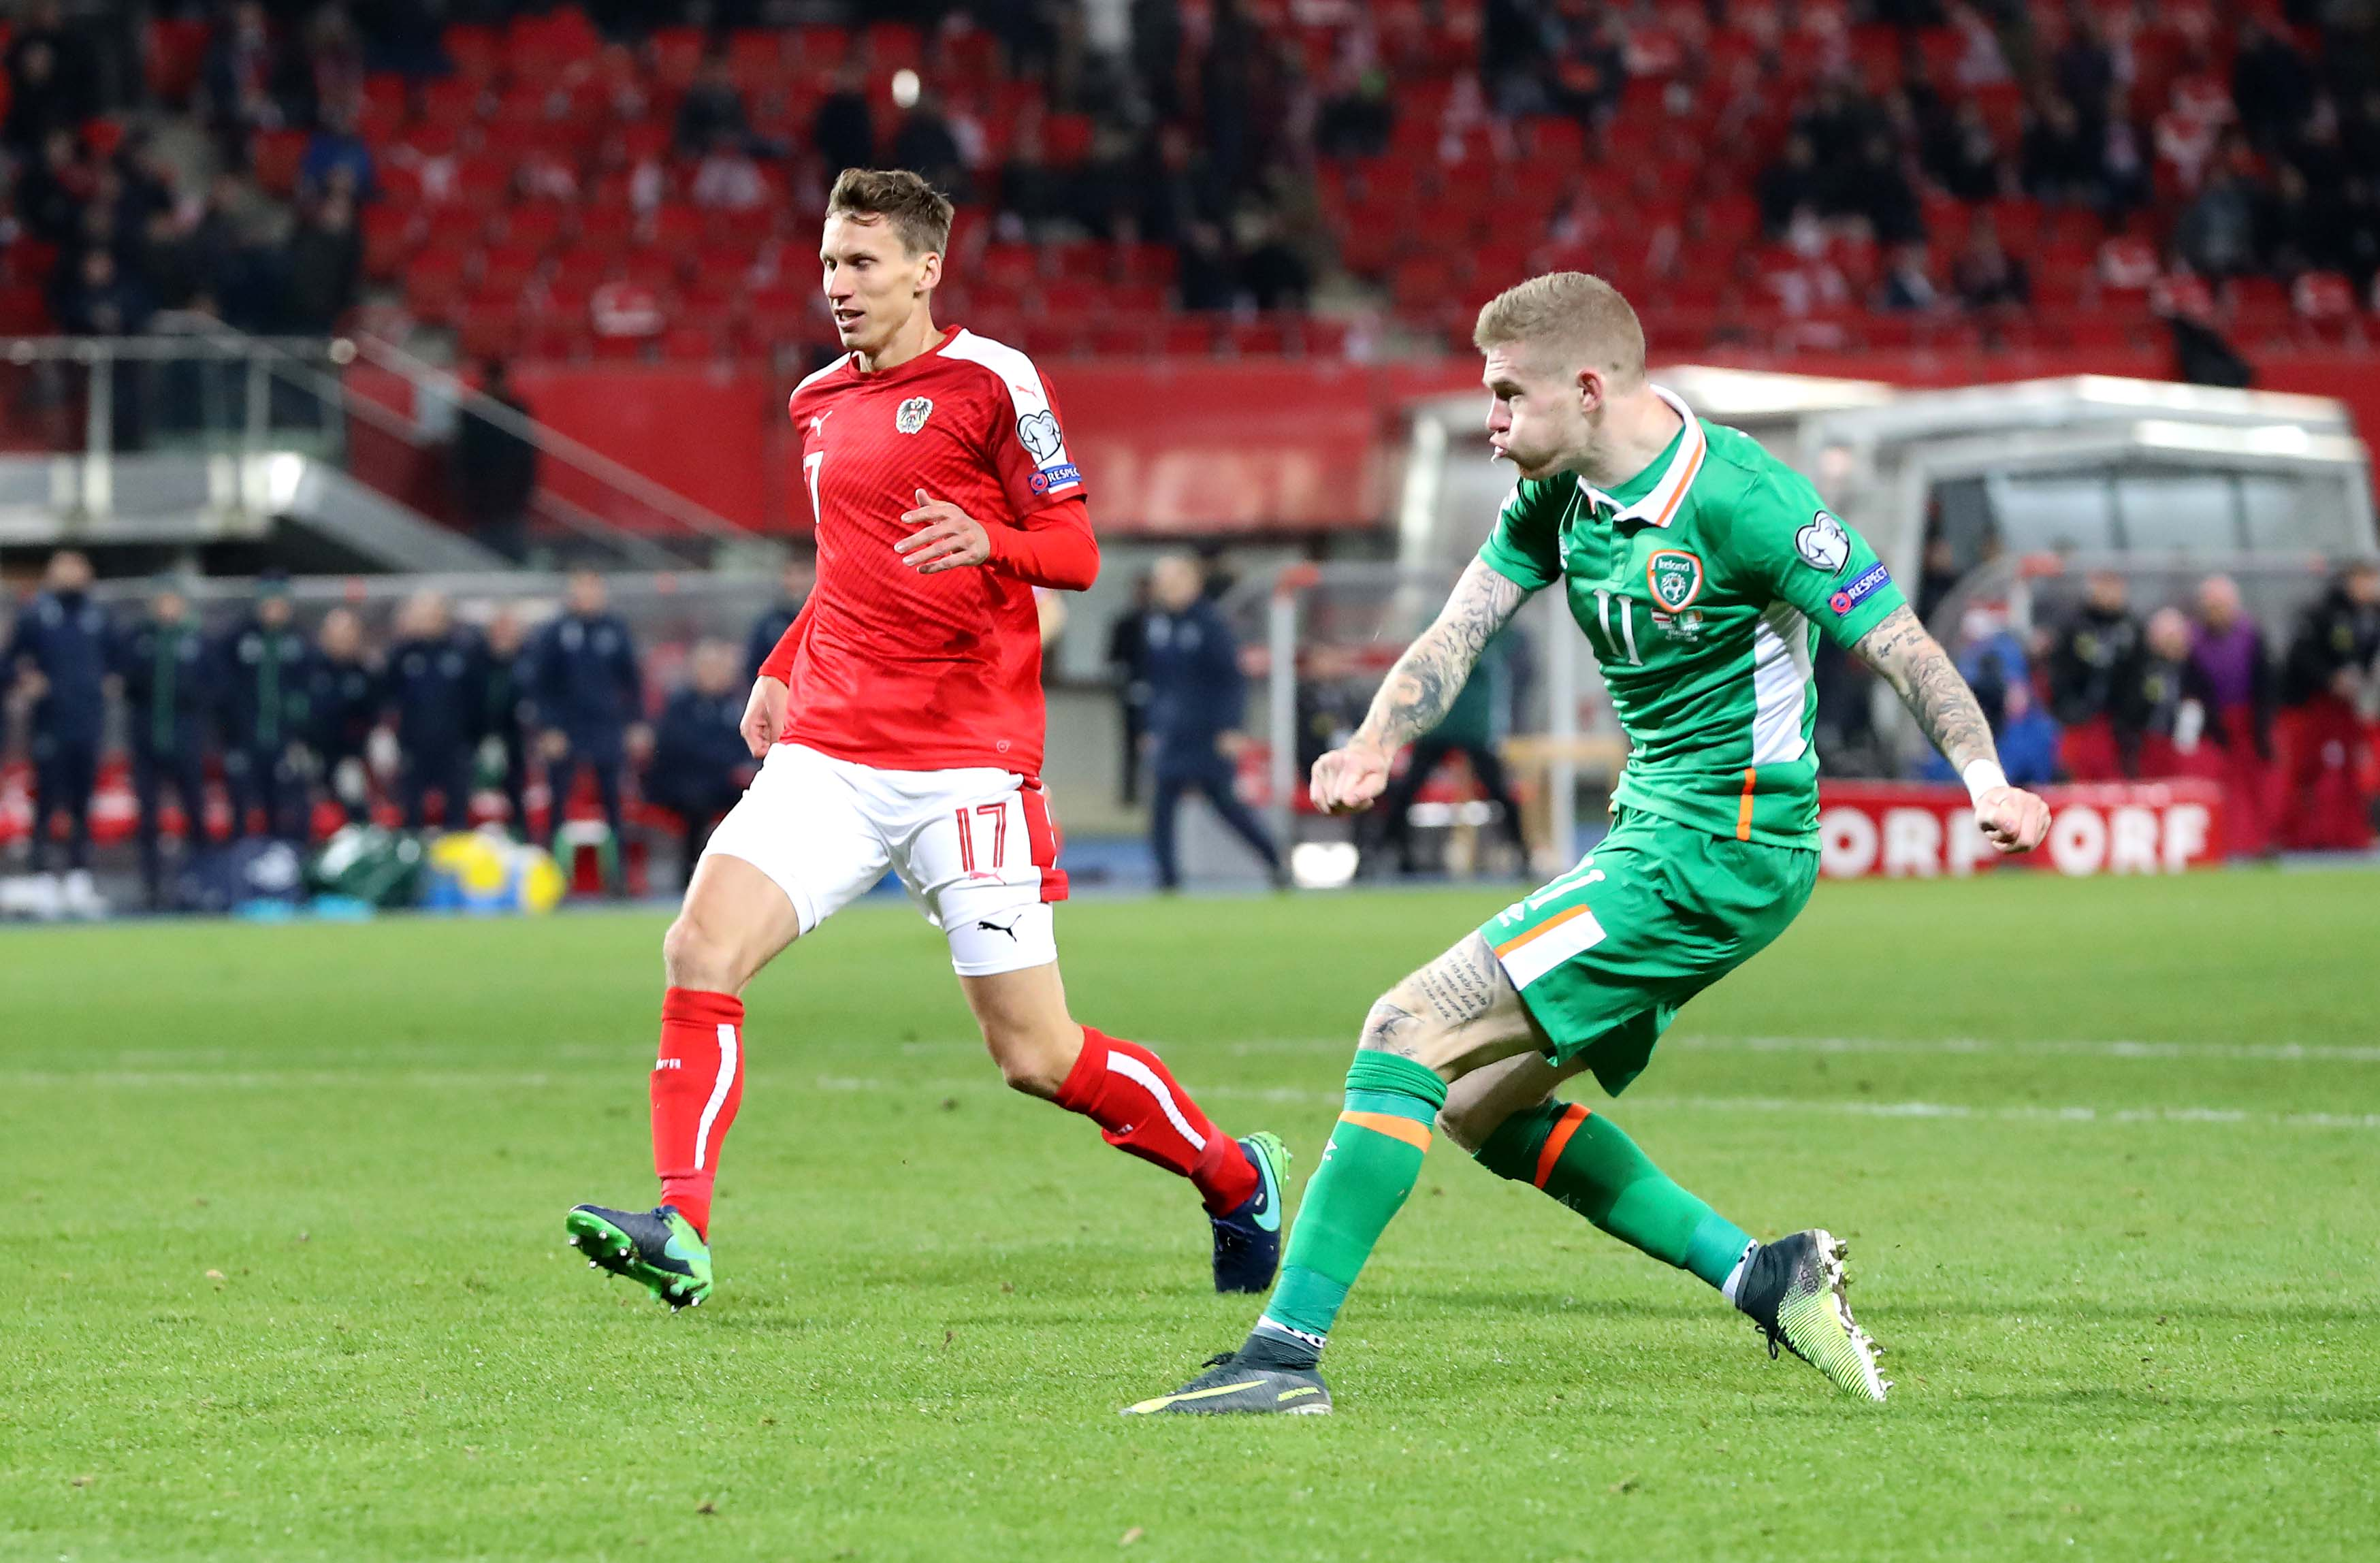 2018 FIFA World Cup Qualifier, Ernst-Happel-Stadion, Vienna, Austria 12/11/2016 Austria vs Republic of Ireland Ireland's James McClean scores the opening goal of the game Mandatory Credit ©INPHO/Ryan Byrne